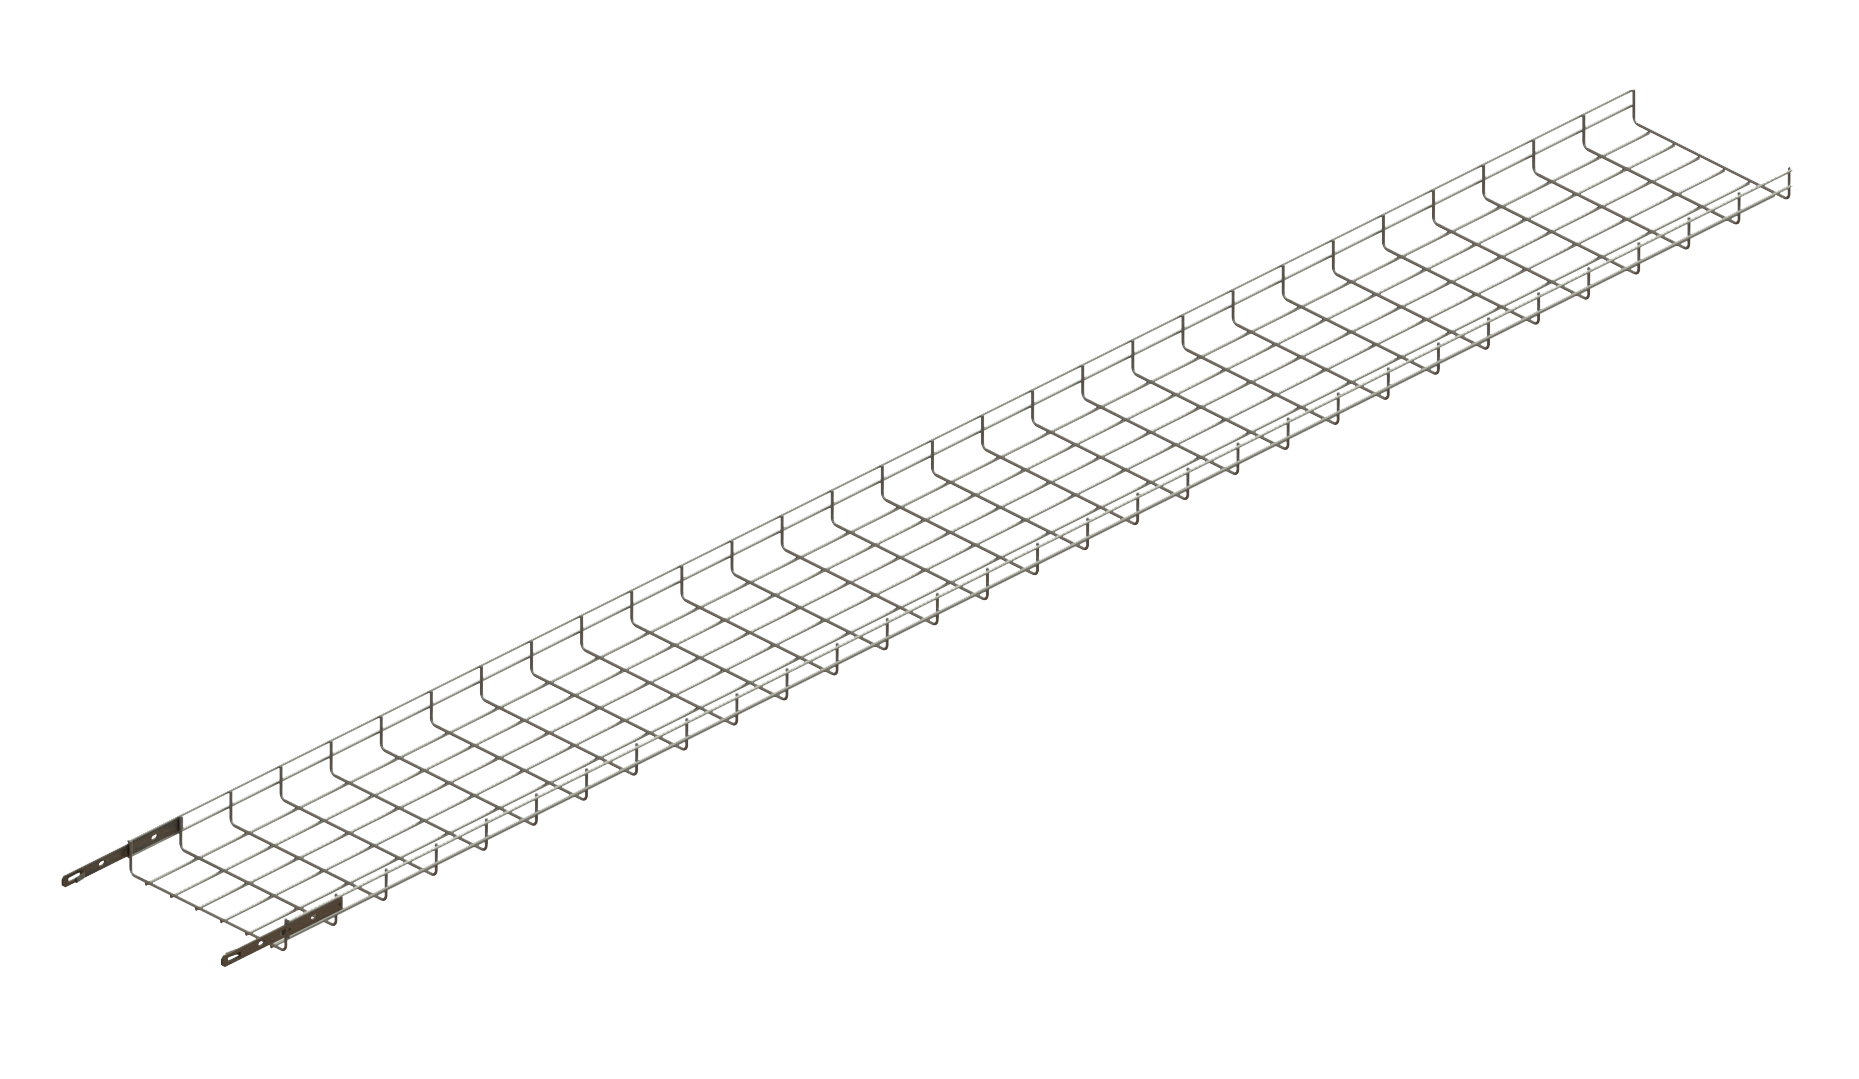 2H Wire Basket - Part Image.png